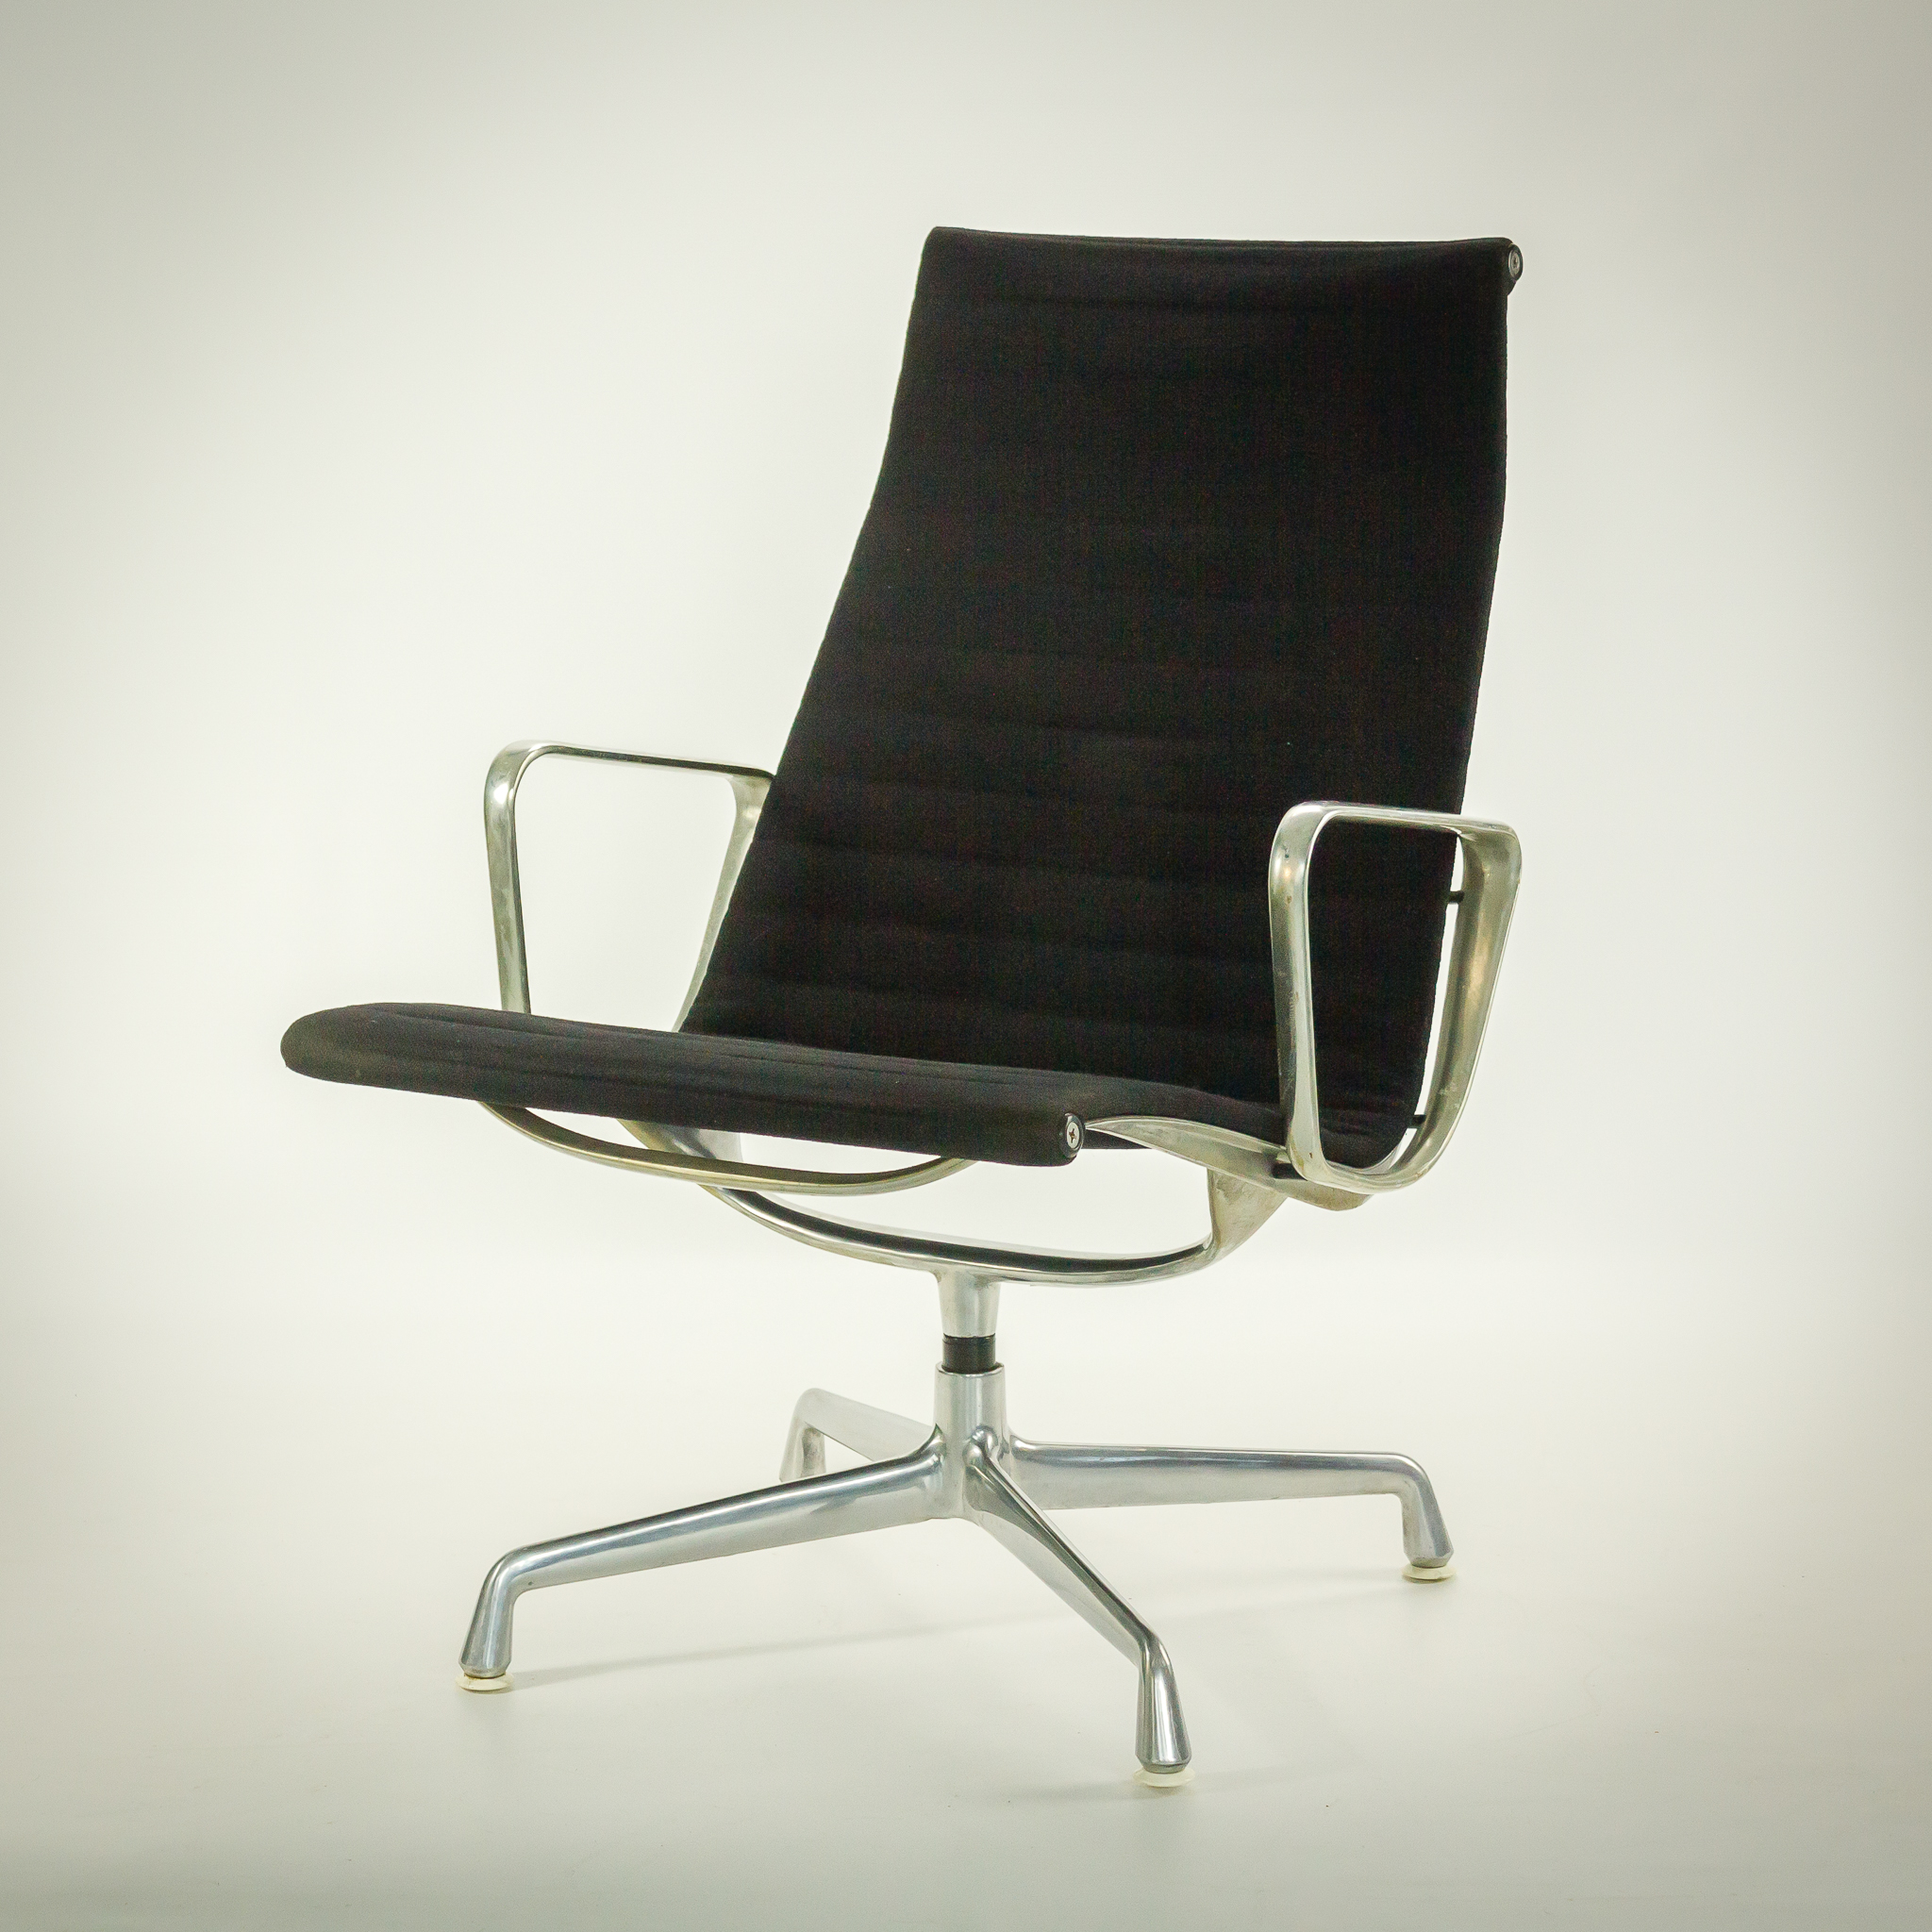 Fauteuil herman miller occasion 28 images don chadwick for Chaise fauteuil eames